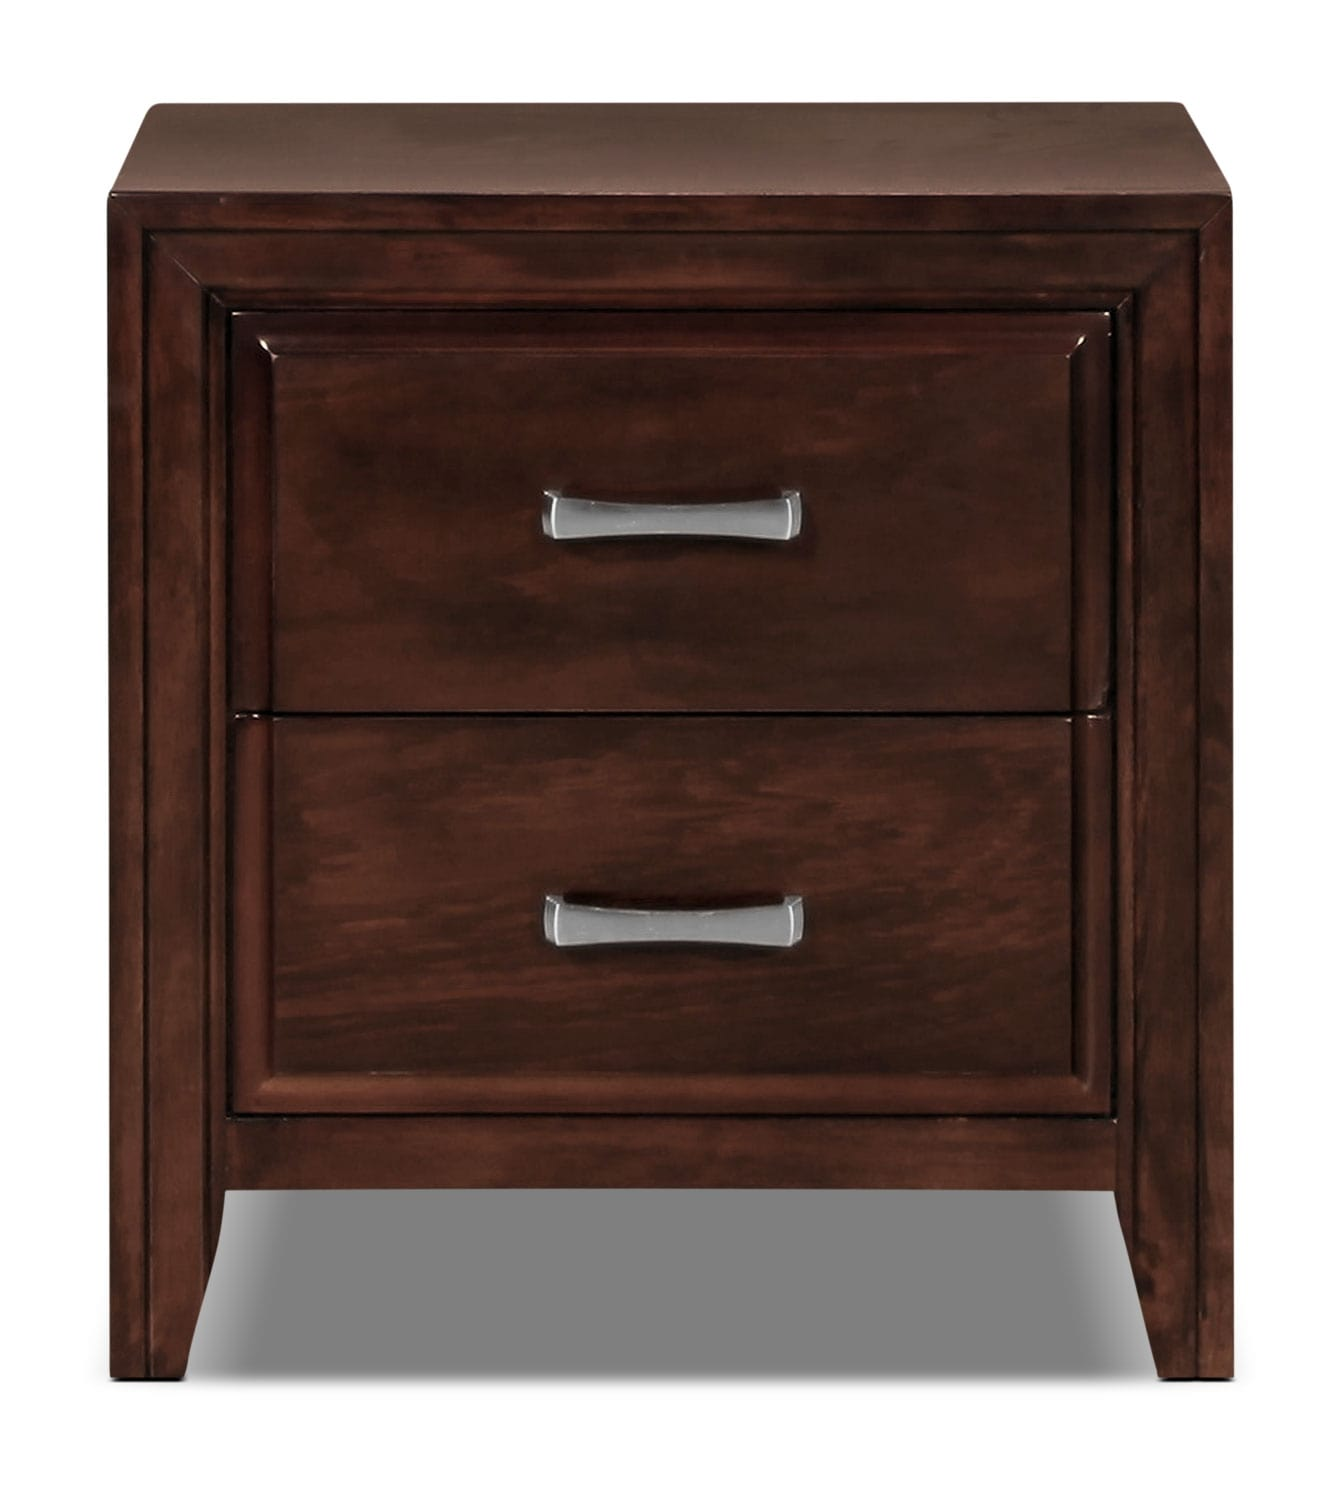 Agrestic Nightstand - Warm Brown